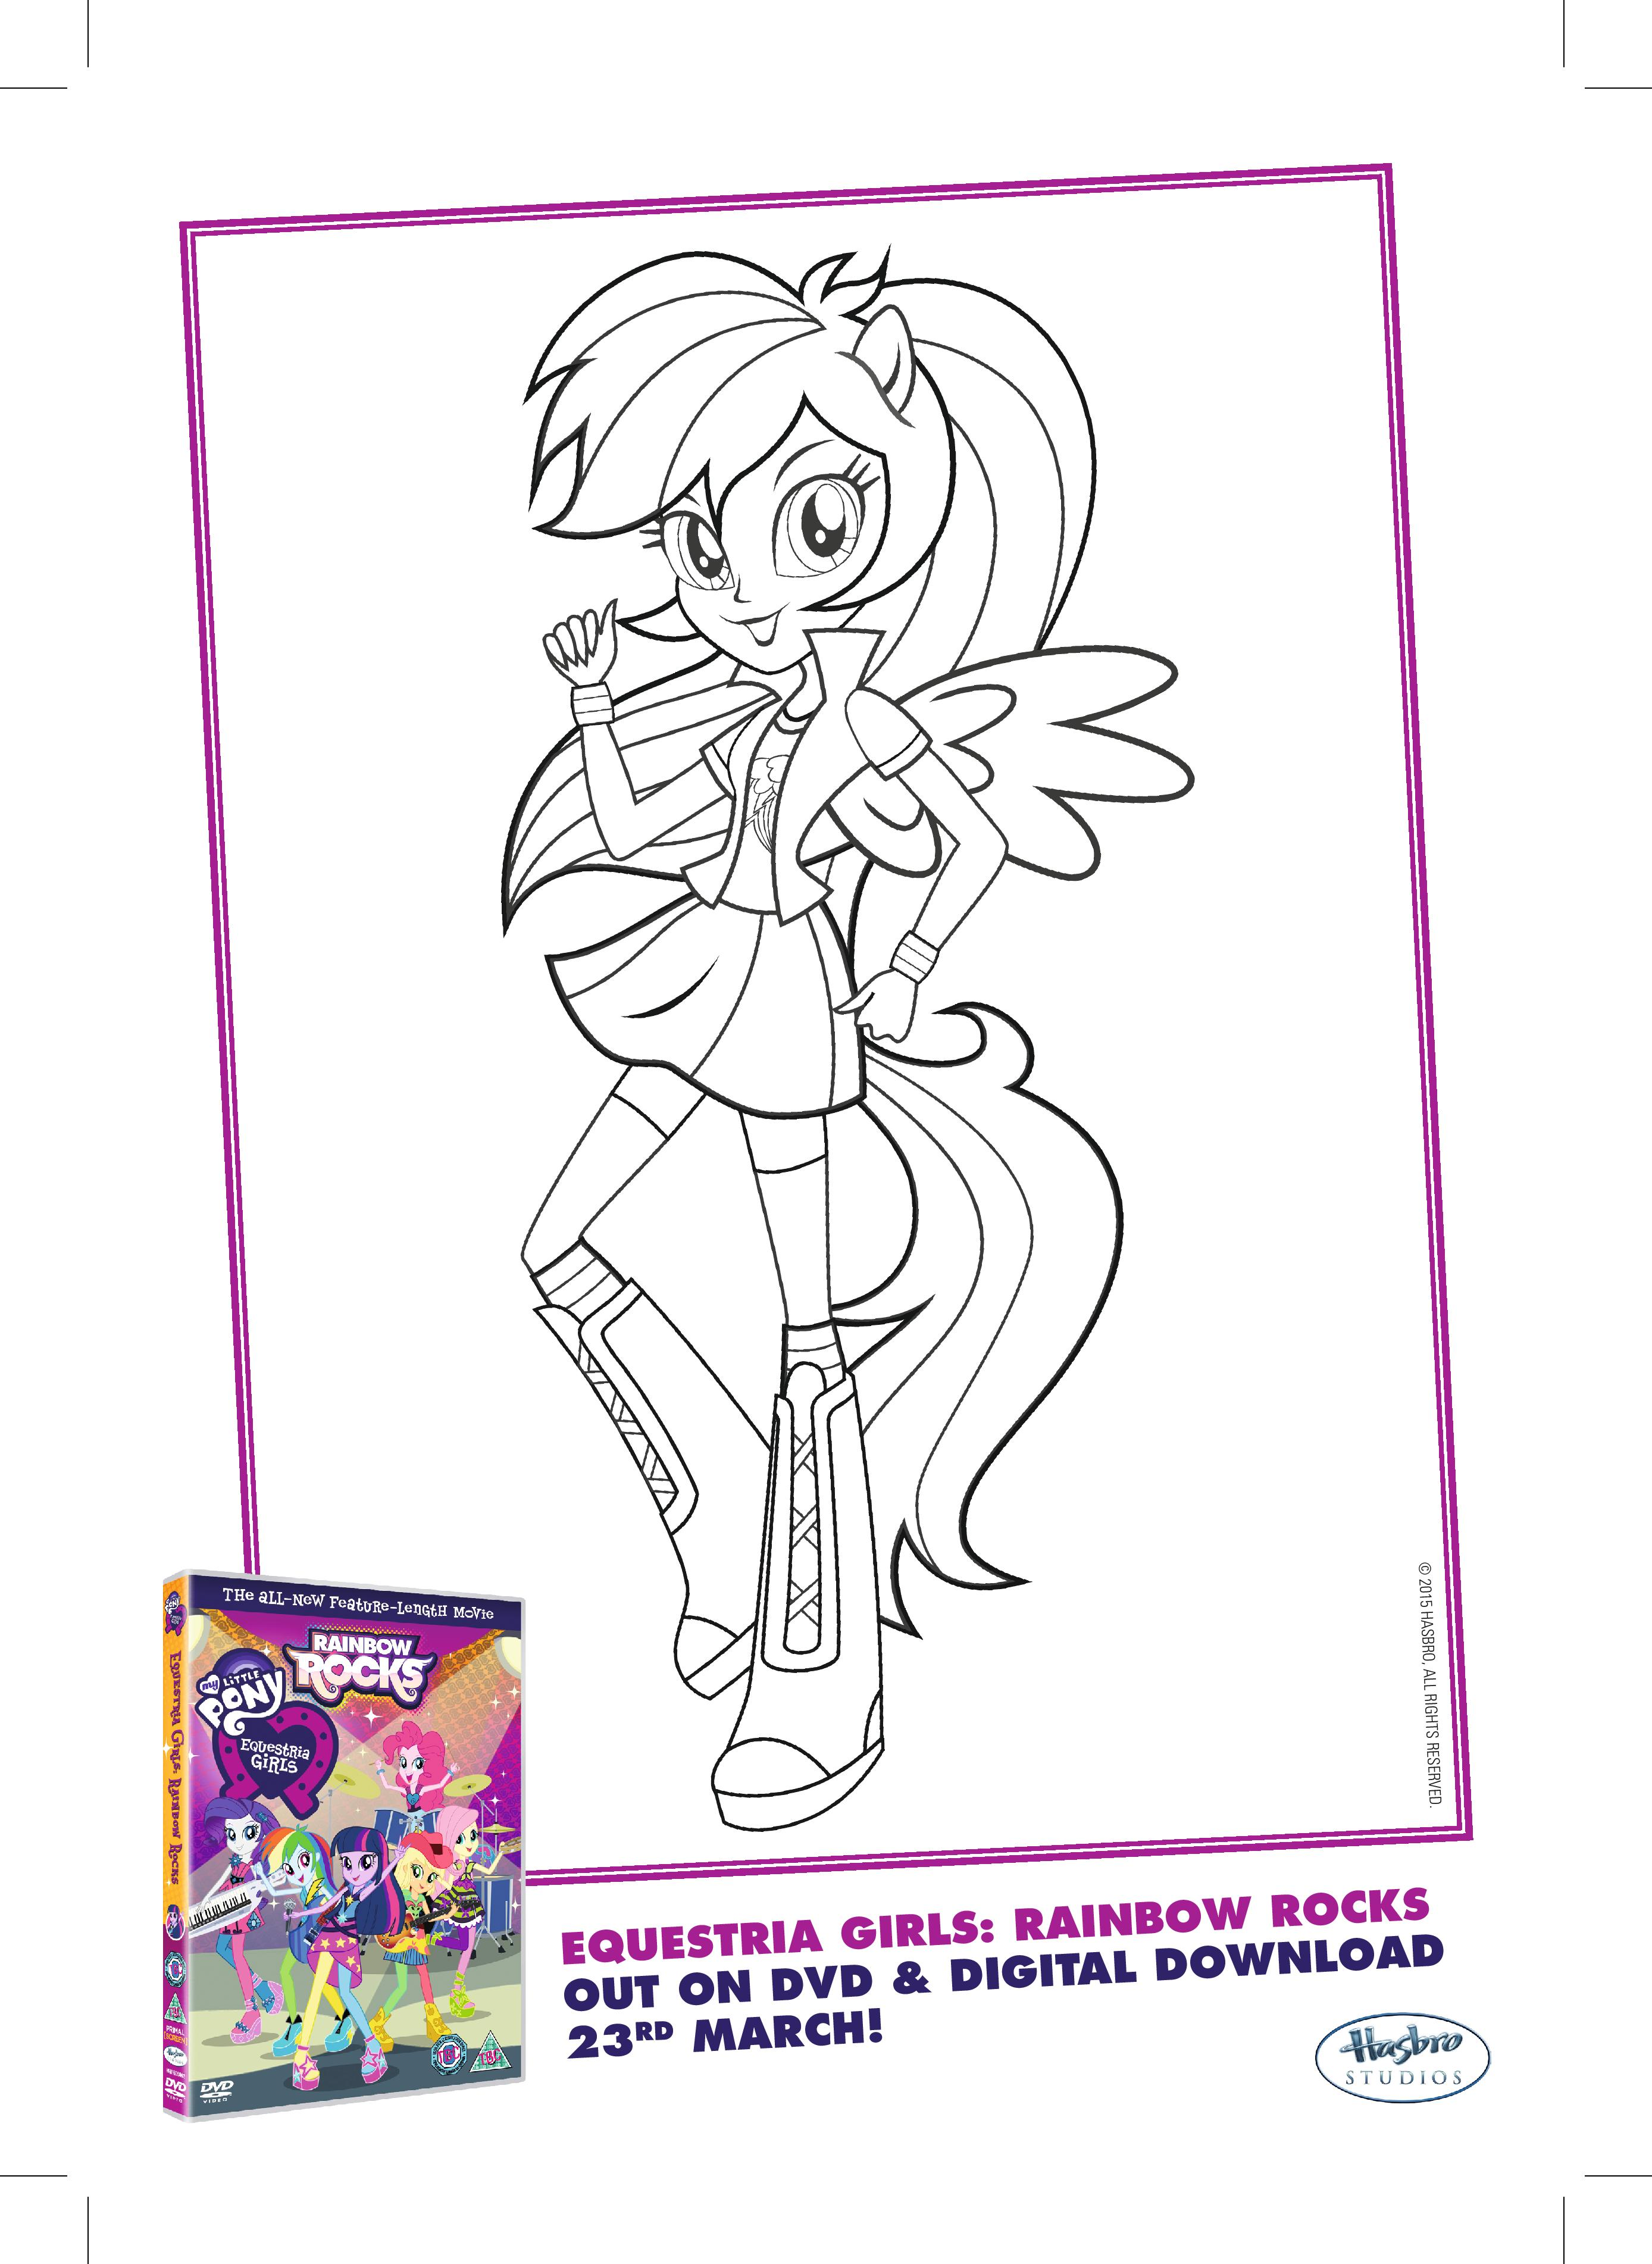 EquestriaGirls_colouring_2_1.2_PRINT_READY-page-001